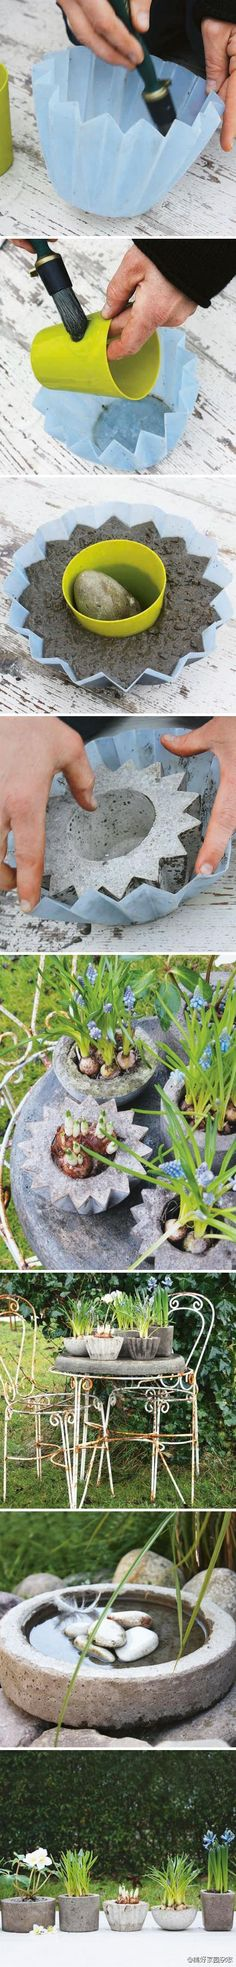 custom made concrete pots, great diy idea